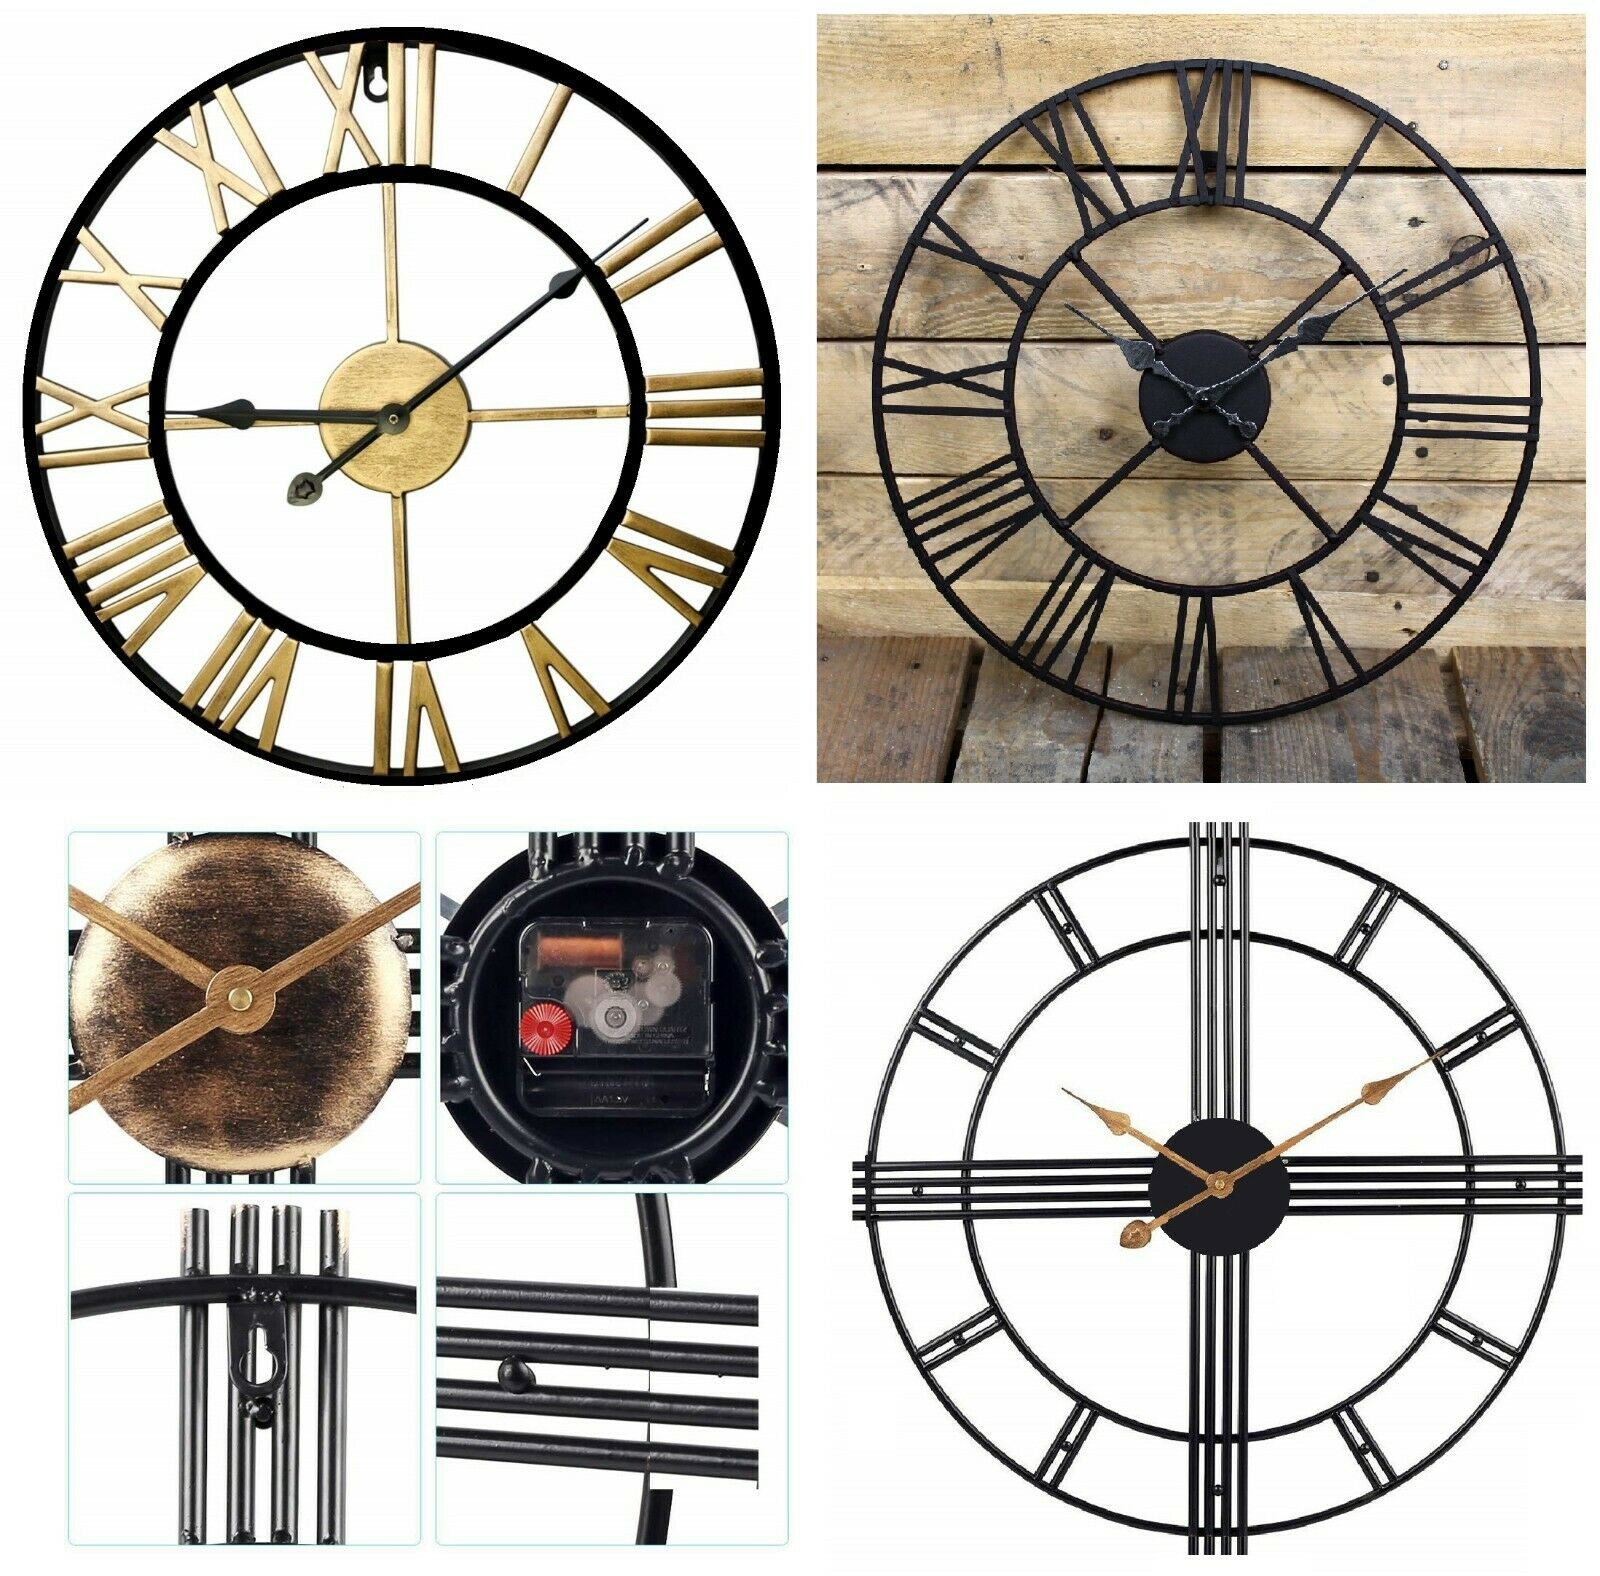 Large outdoor garden wall clock big roman numerals giant open face metal 40 60cm - Large roman numeral wall clocks ...